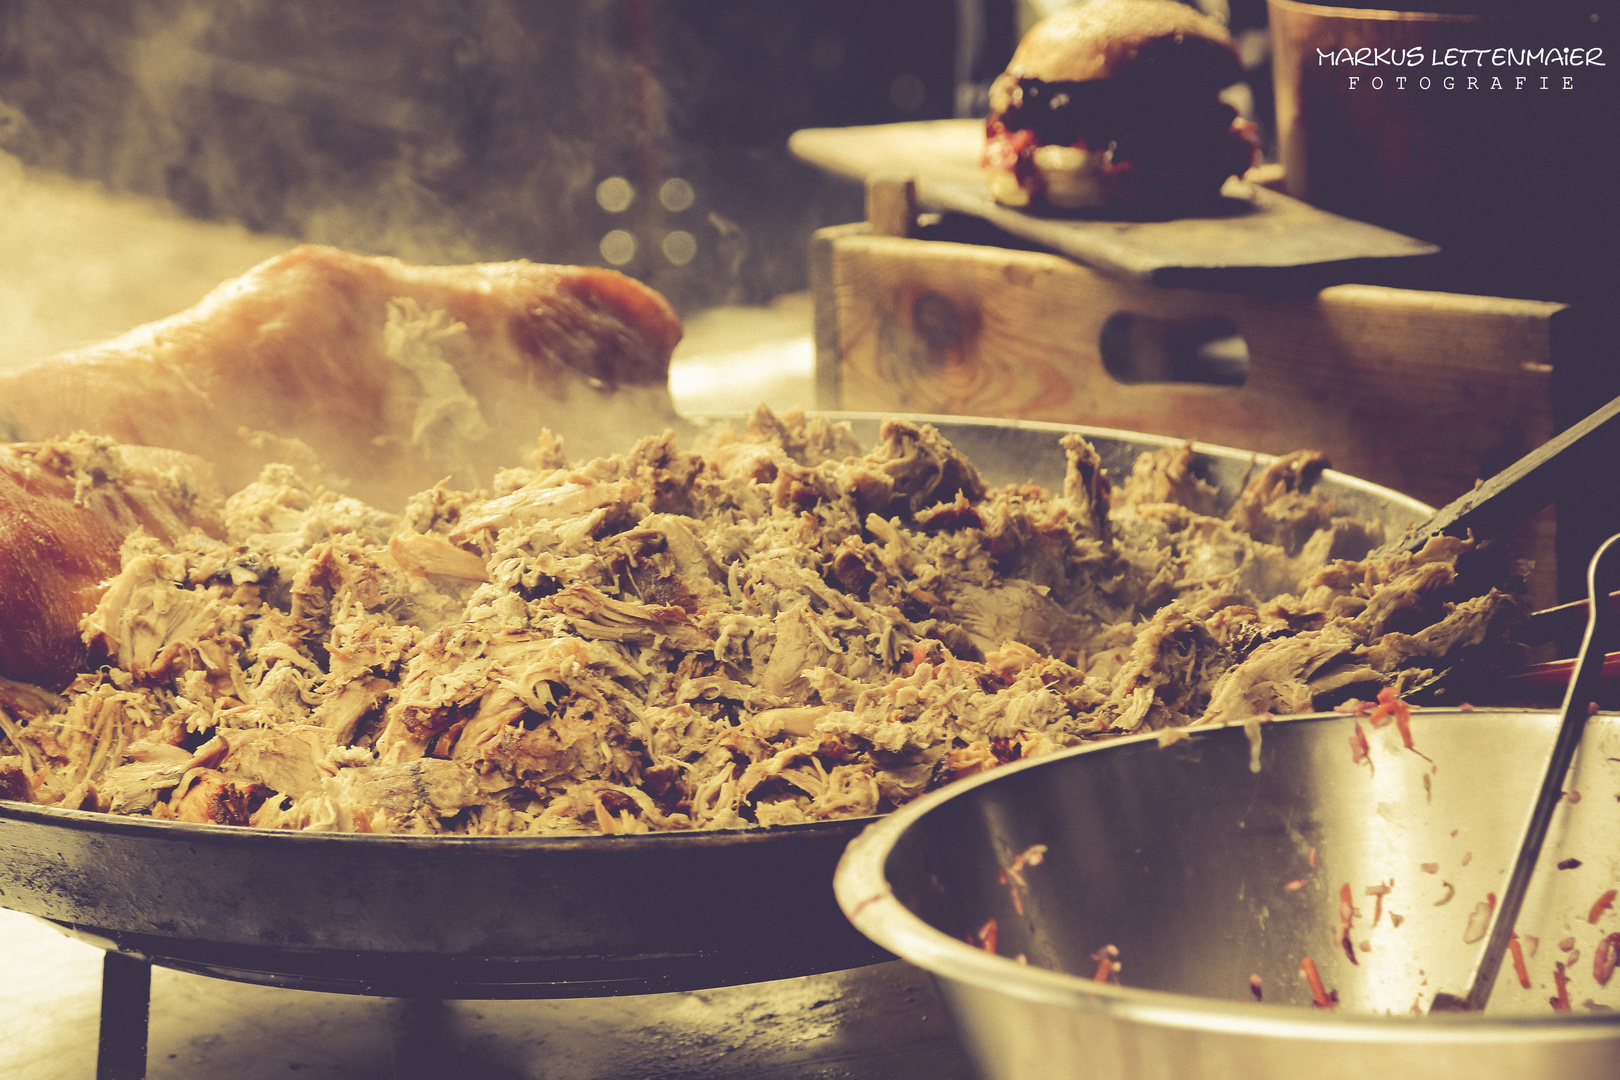 Pulled Pork at the Covent Garden Market